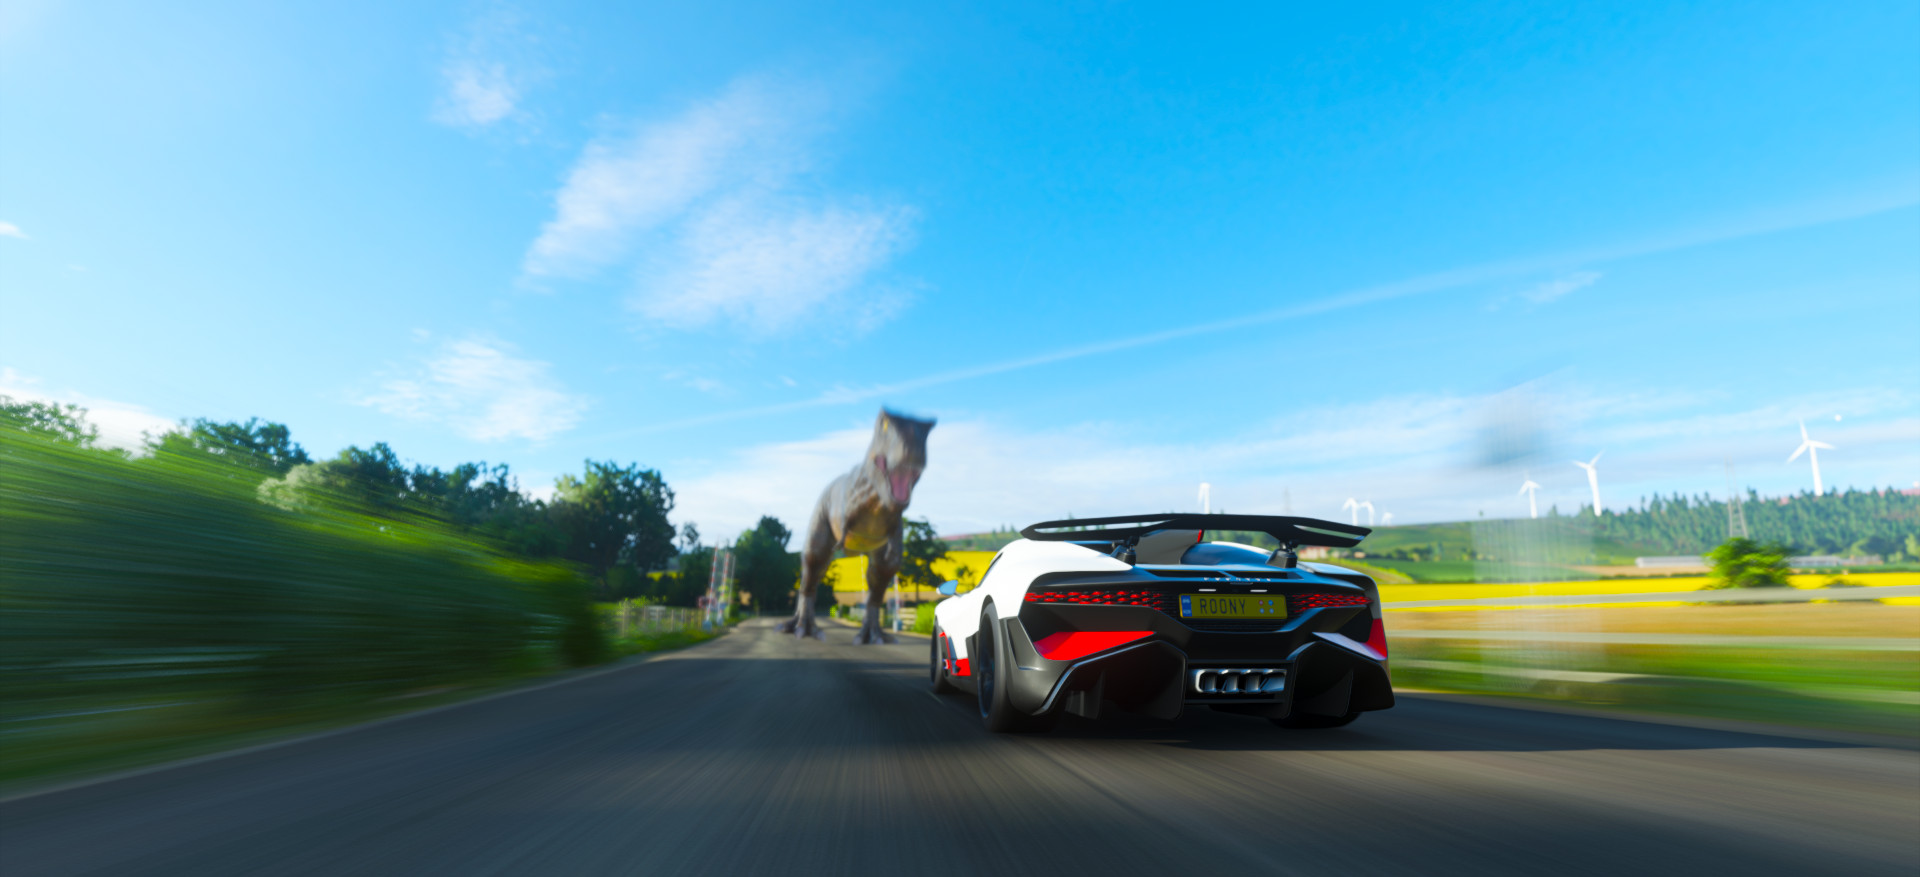 Forza Horizon 4 – Super7 impressions — Trackmania has come to Horizon